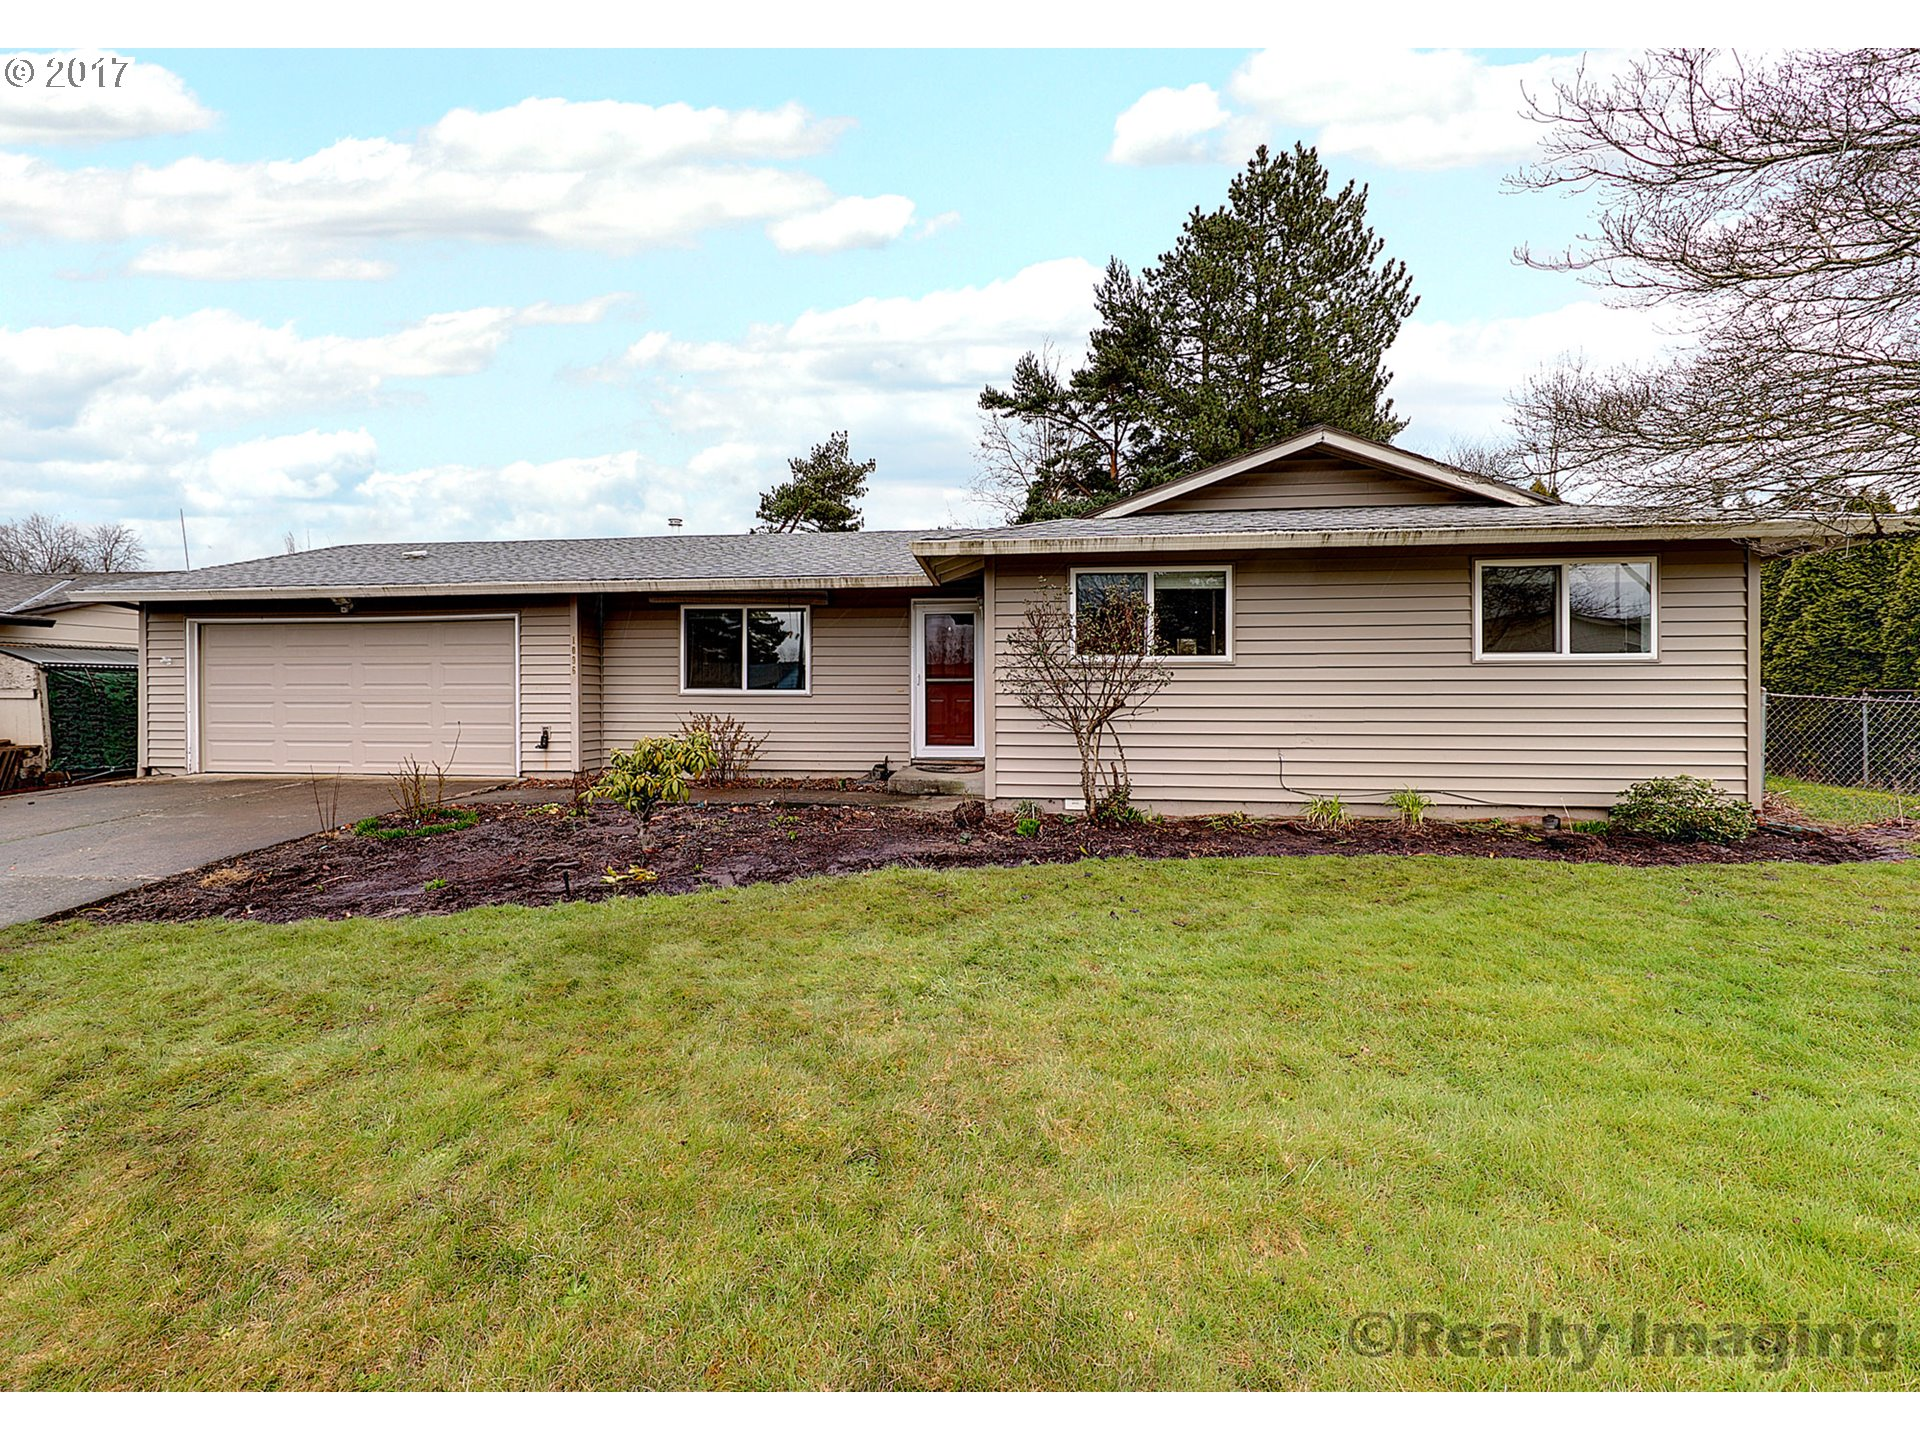 1590 sq. ft 3 bedrooms 2 bathrooms  House For Sale,Gresham, OR